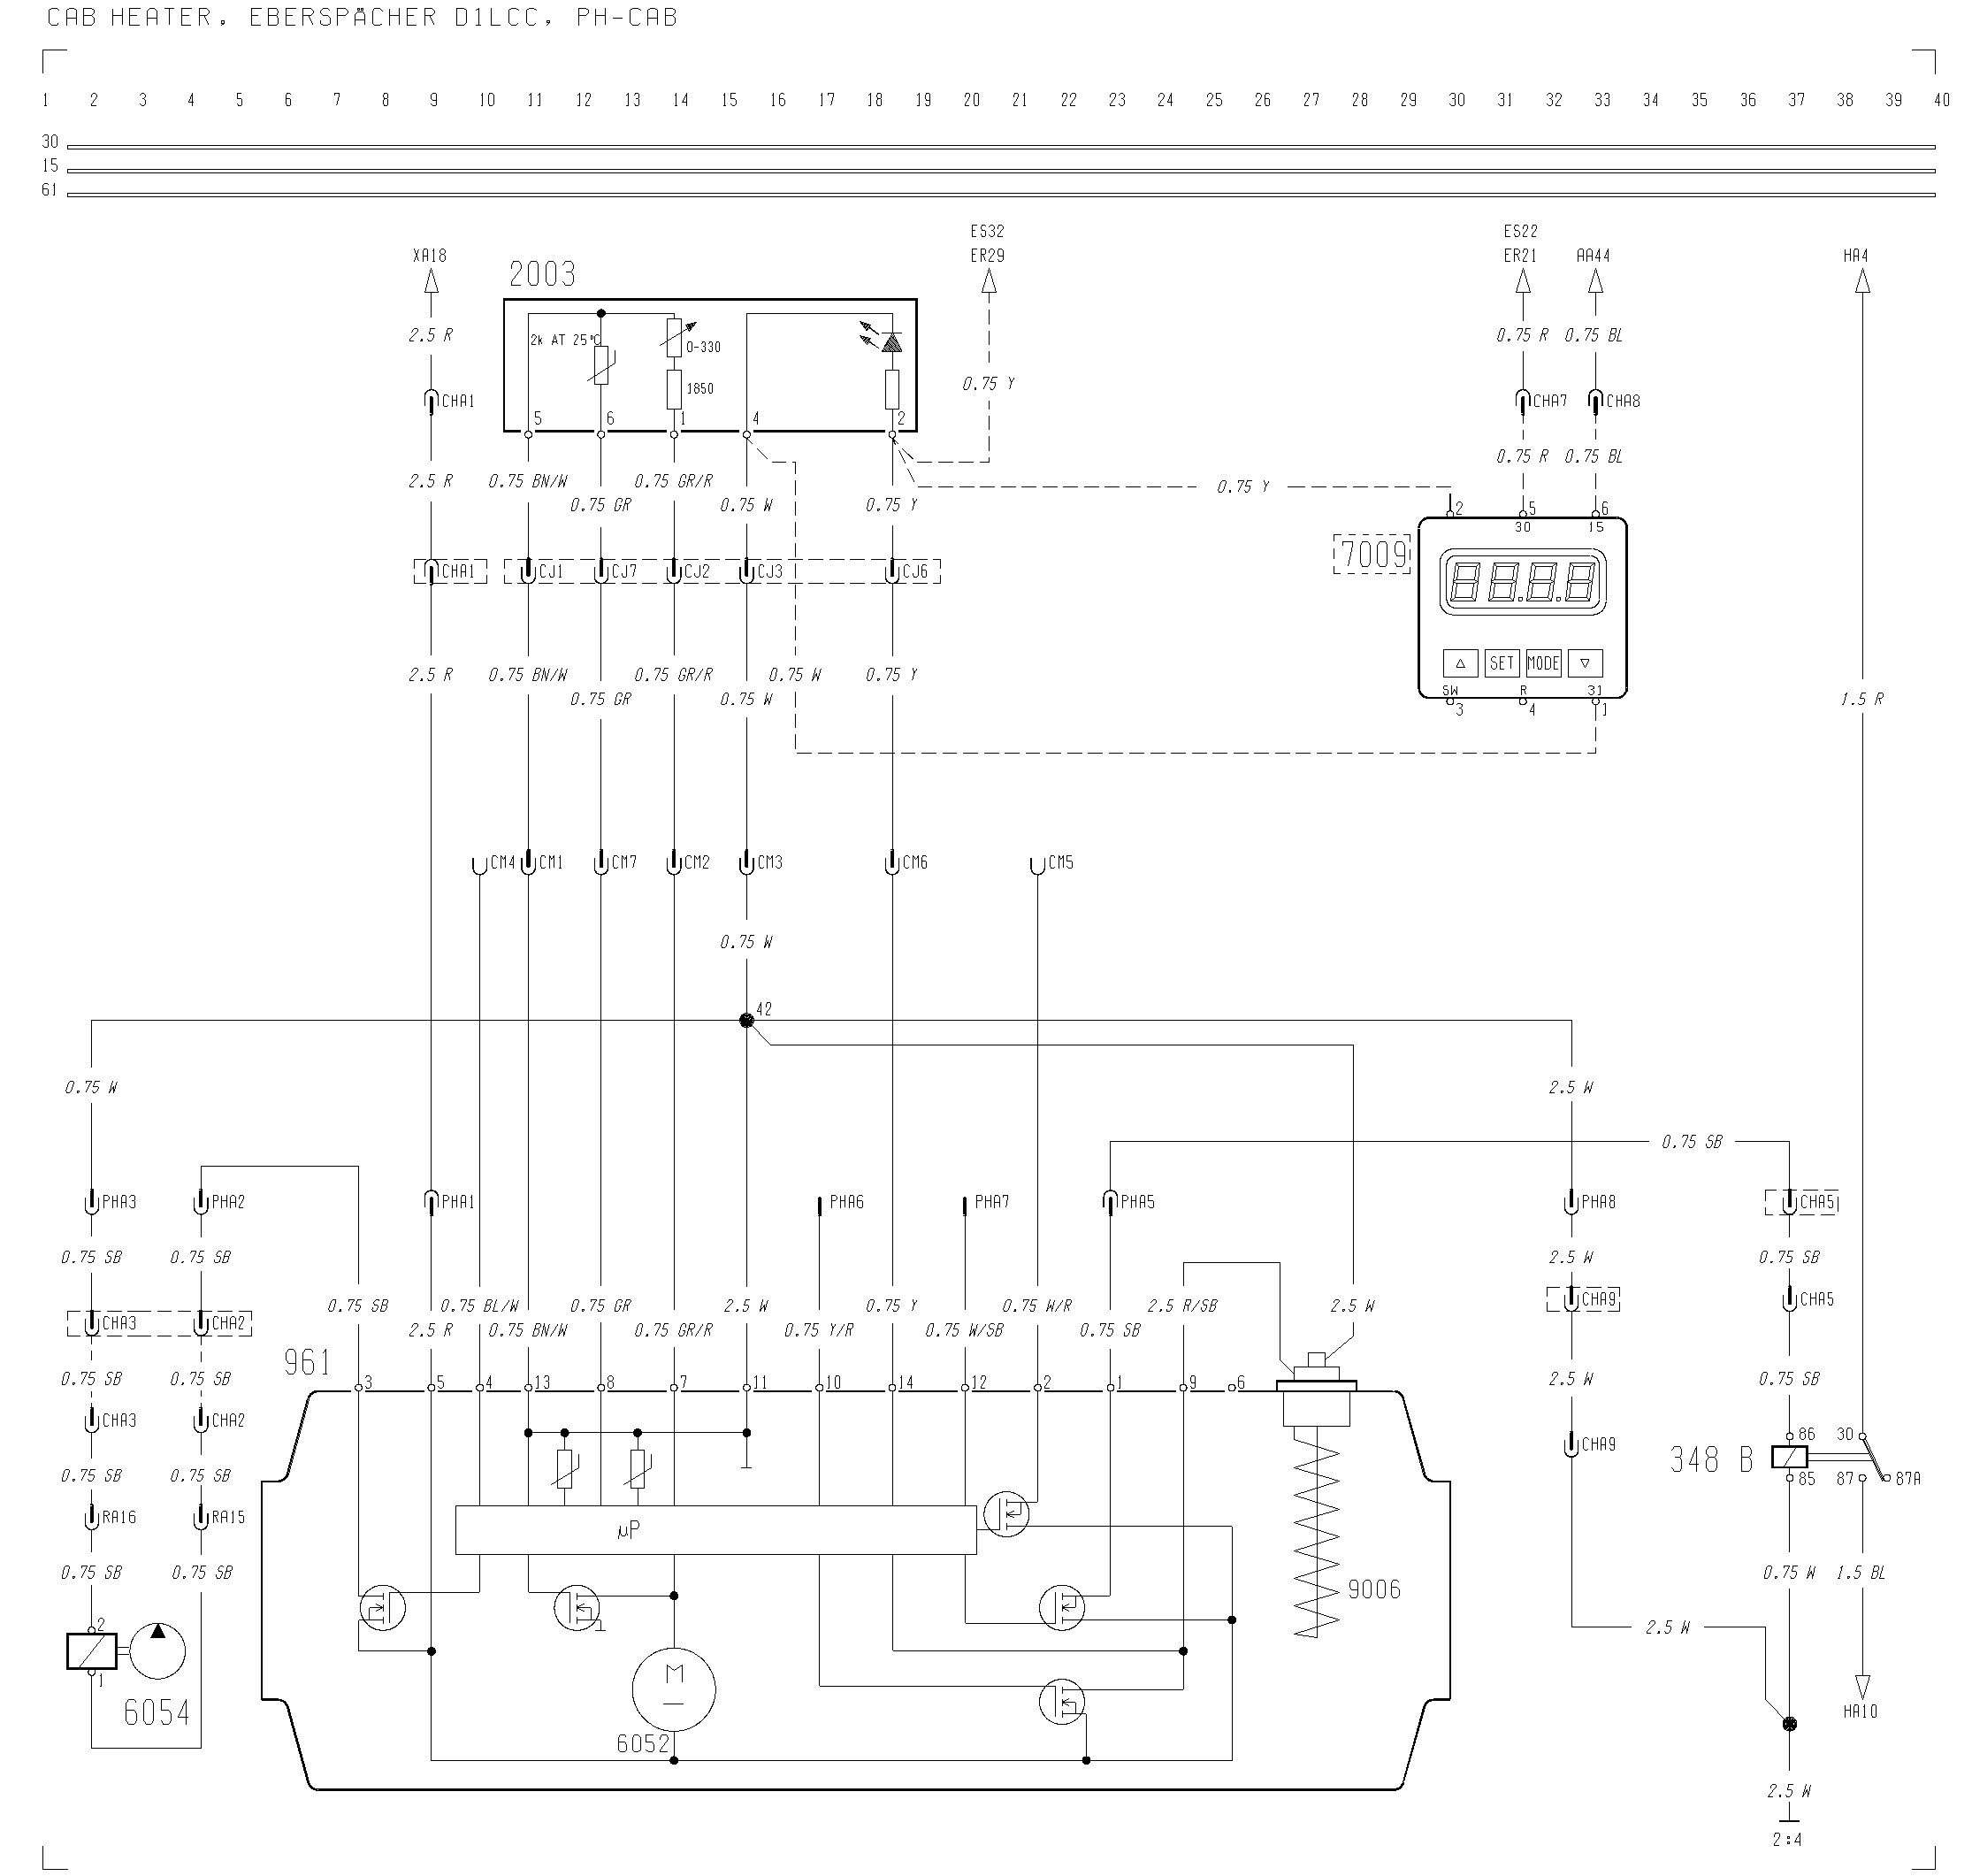 Volvo F12, F16 - wiring diagram - cab heater, eberspacher dilcc, PH ...